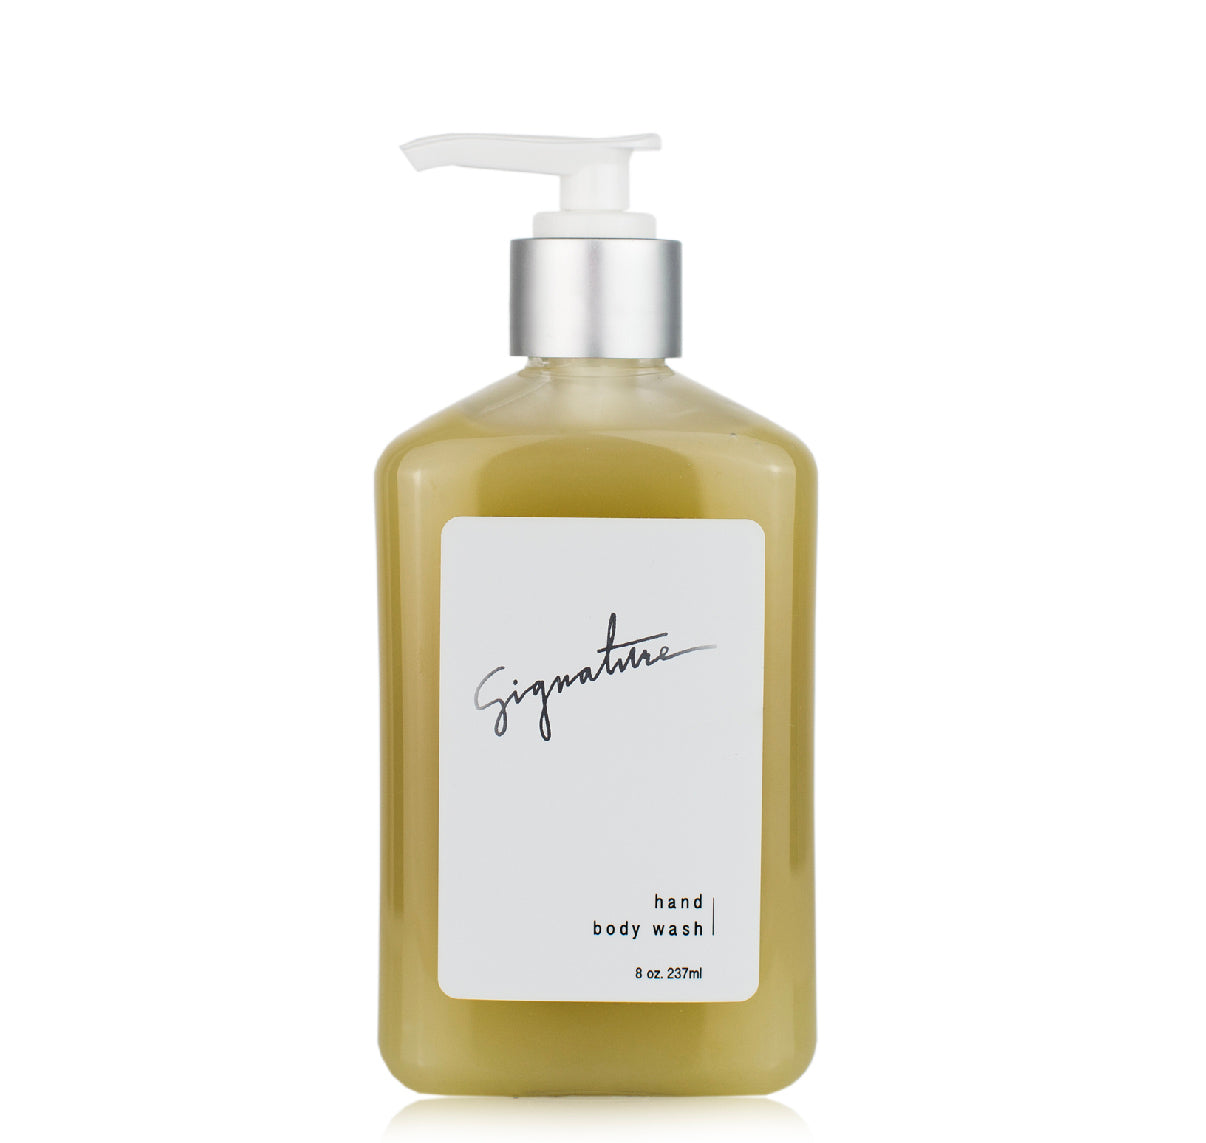 Gadabout, Signature, Body, Hand and Body Wash, Spa